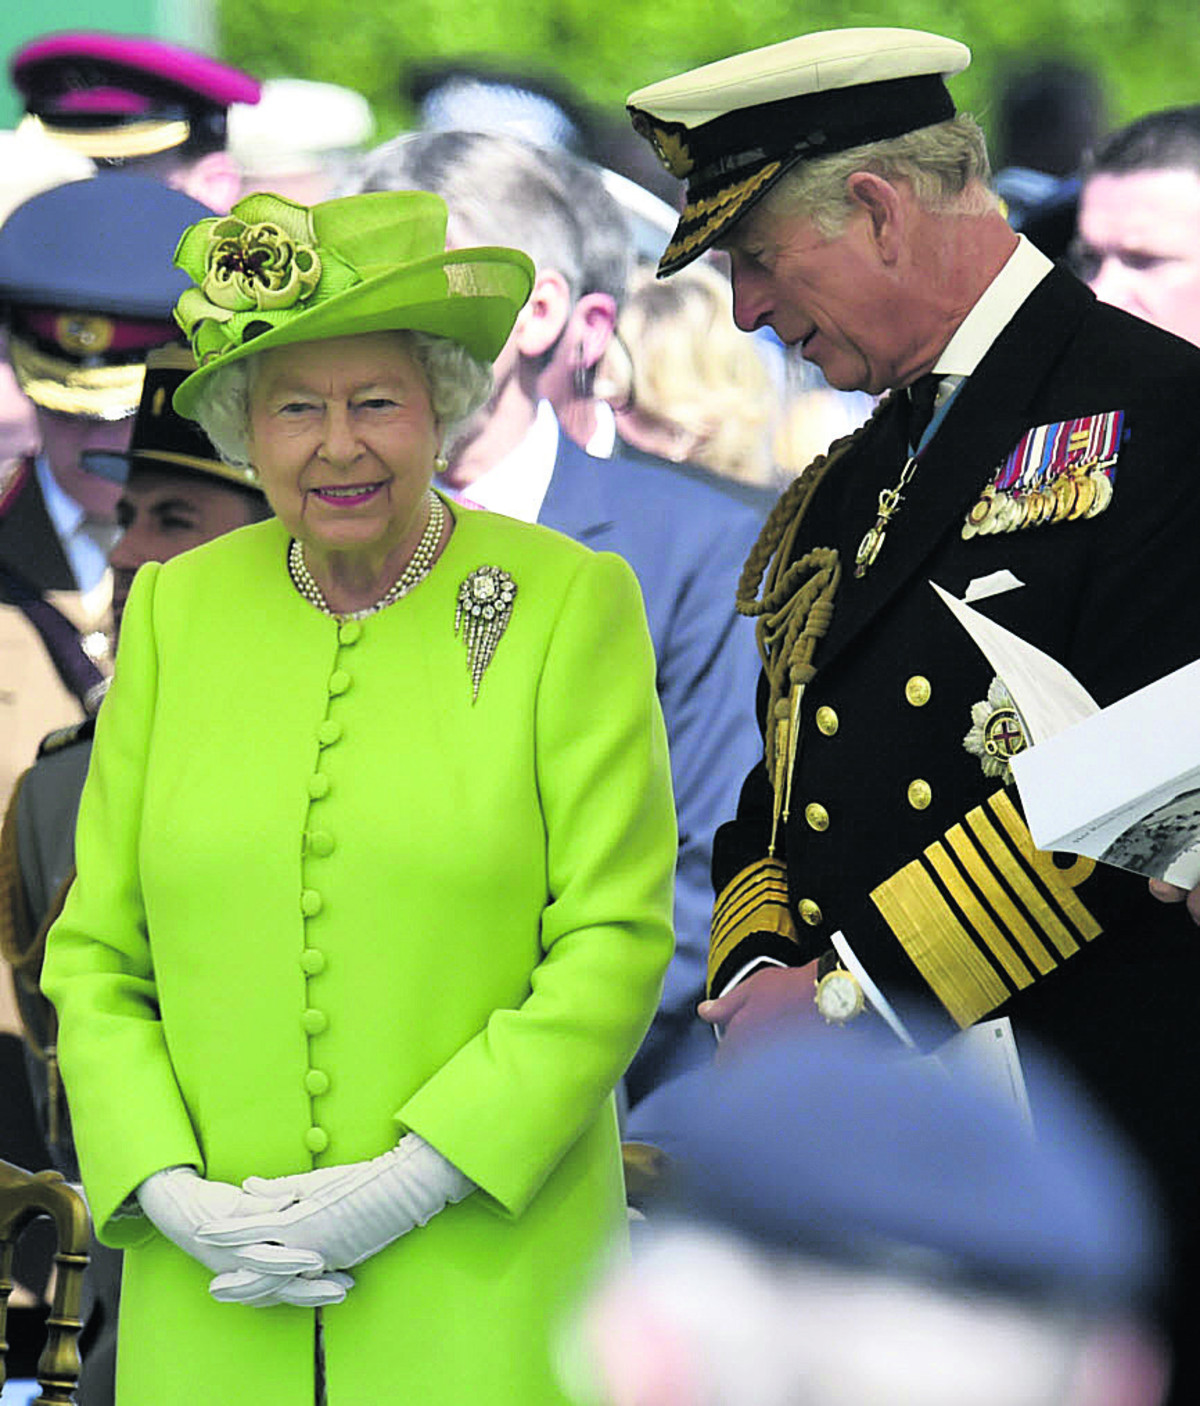 D-Day 70: Queen joins veterans of landings in honouring fallen comrades